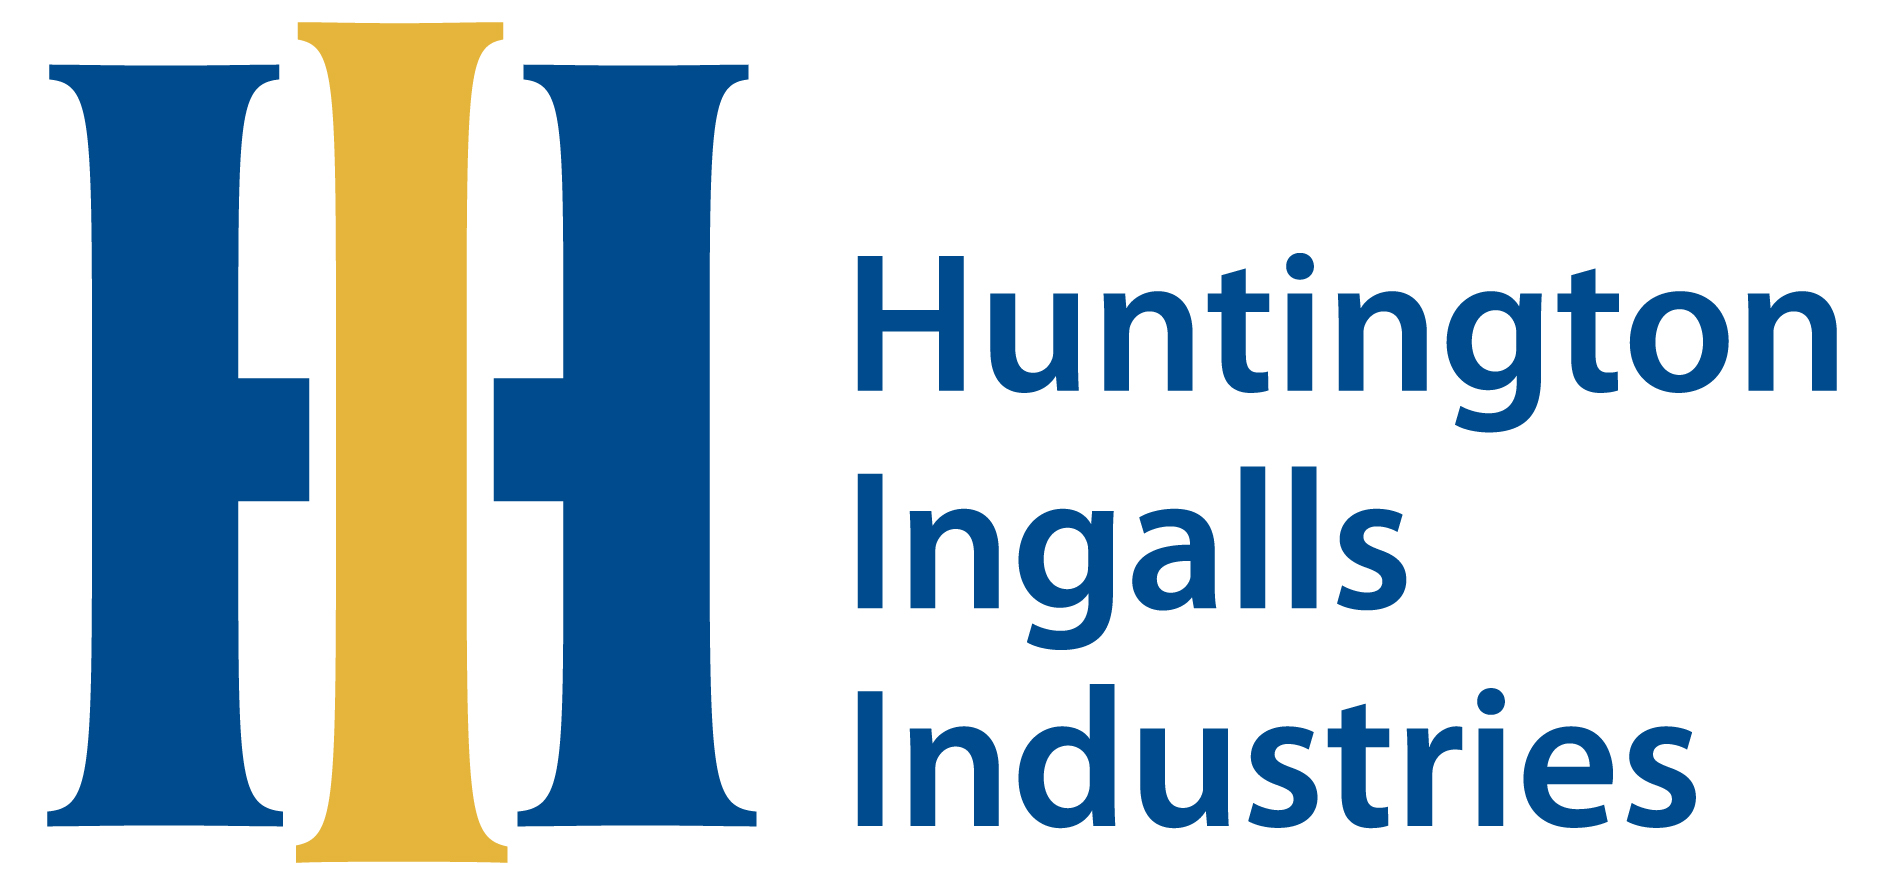 Huntington Ingals